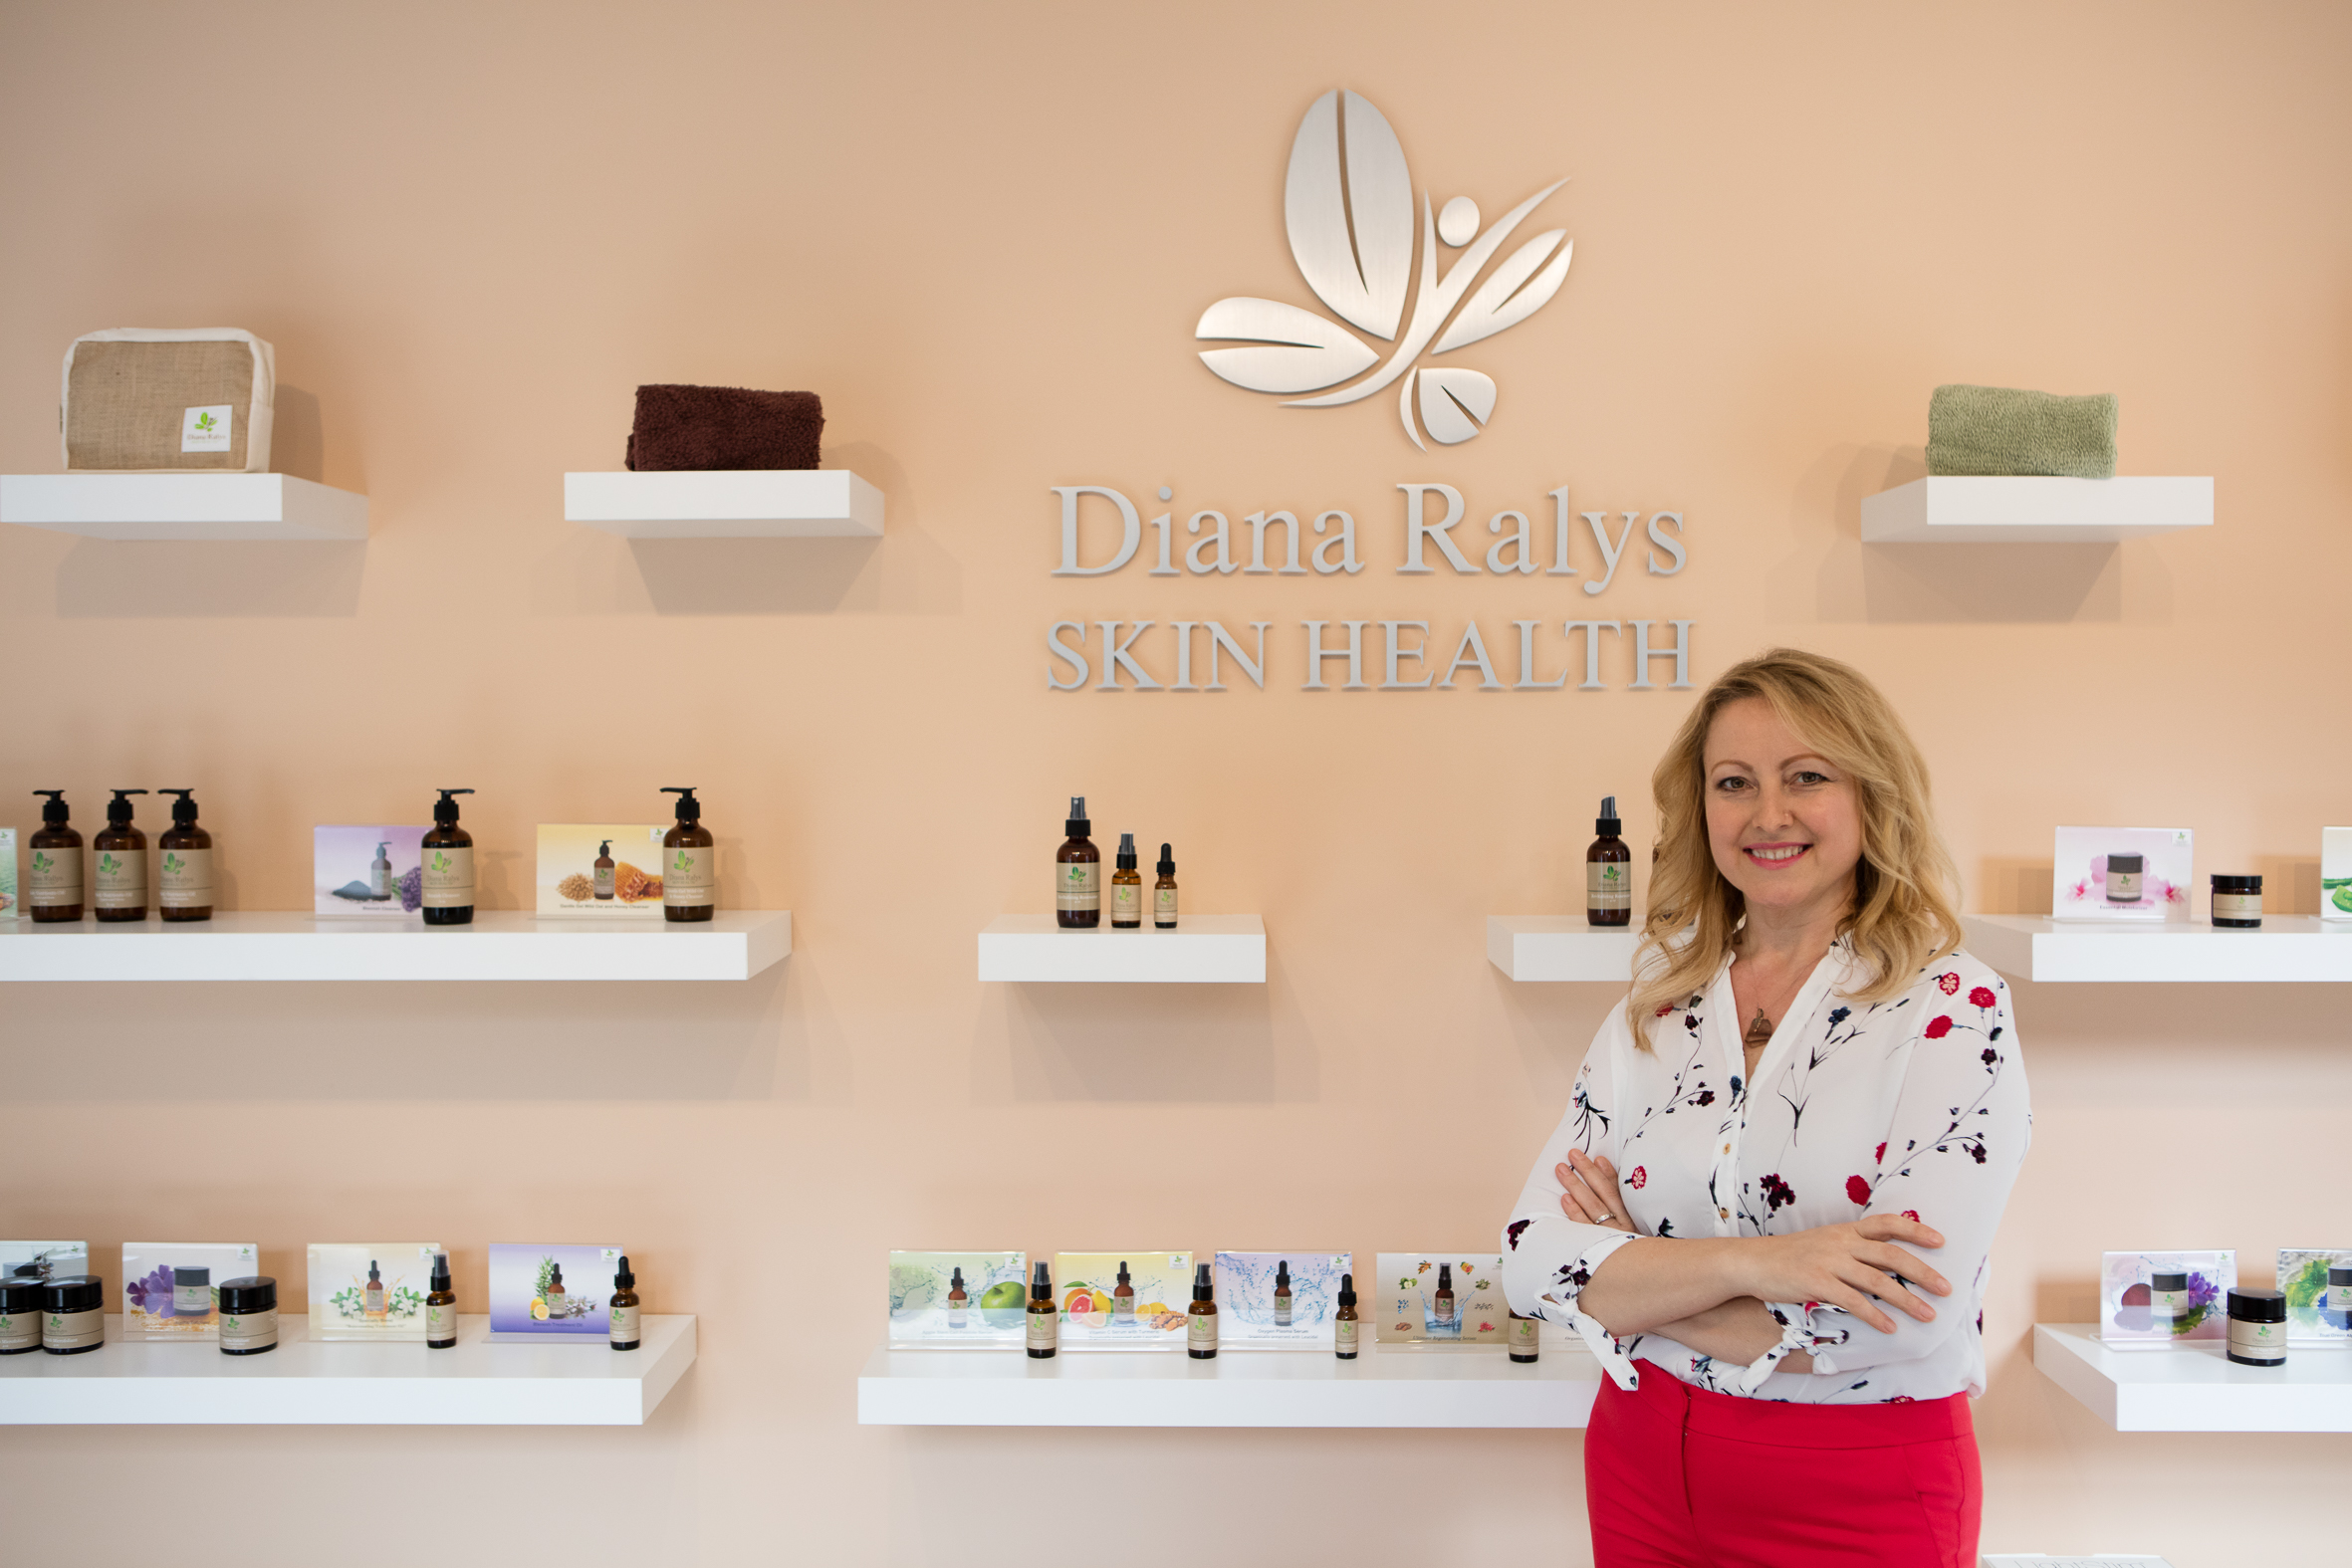 By  Diana Ralys, LE, COE, HC    Skin Expert,Health Coach,Board Certified Holistic Drugless Practitioner,Reiki Master,Owner and Founder of Radiance Wellness Spa,Diana Ralys Skin Health Product formulator,#1 Best Selling Author,Educator and Event Speaker.